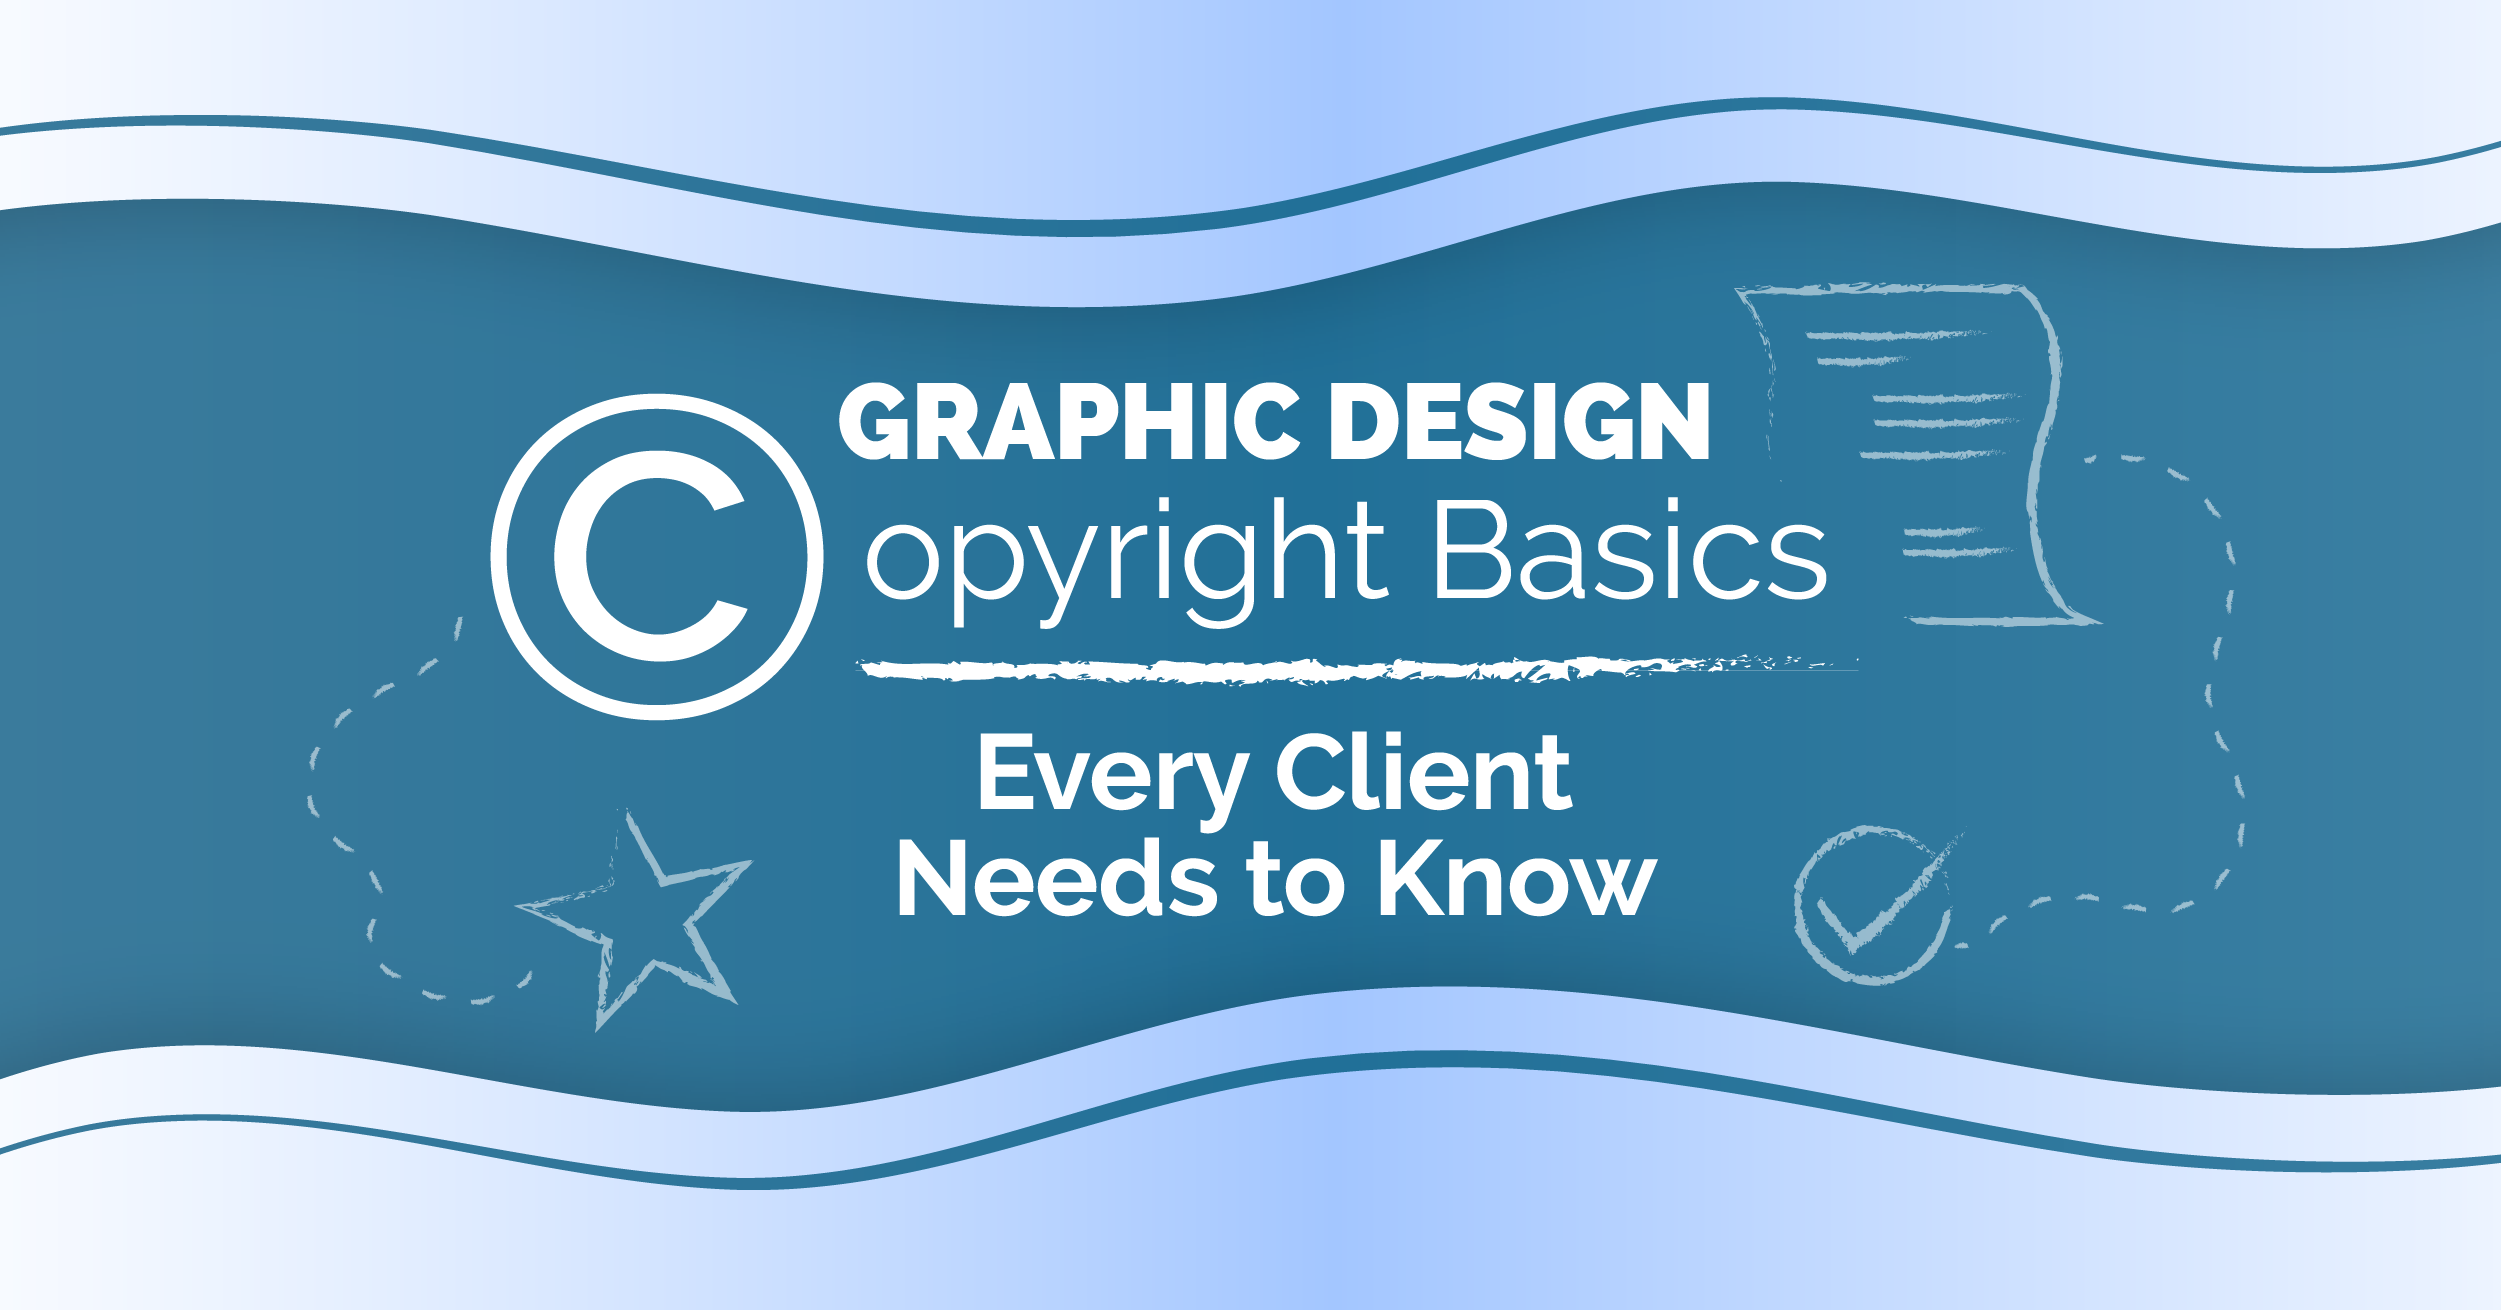 Graphic Design Copyright Basics Every Client Needs To Know